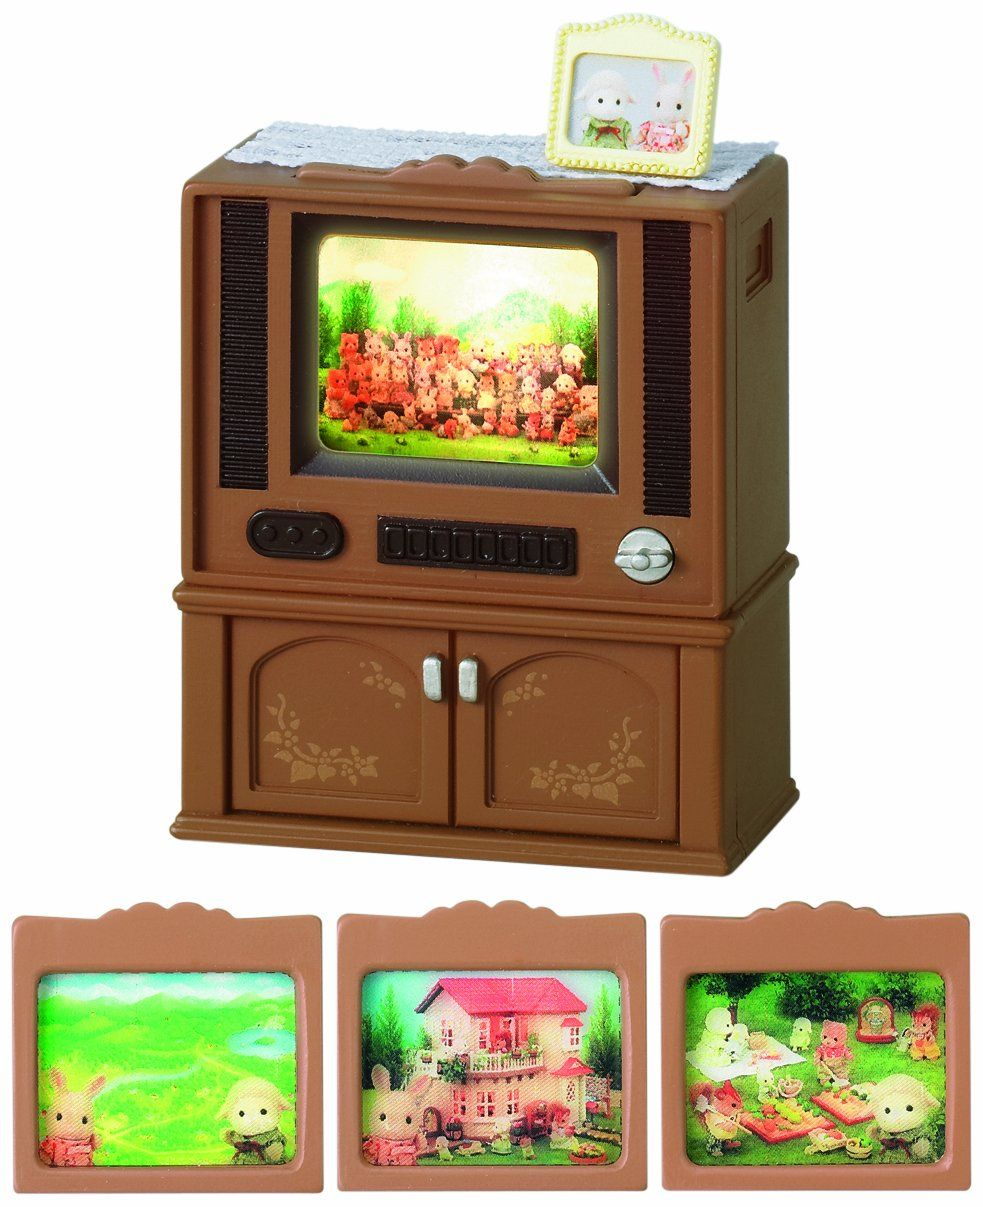 Sylvanian Families Deluxe TV Set Lightup TV Screen In Cabinet   Glasgow,  United Kingdom